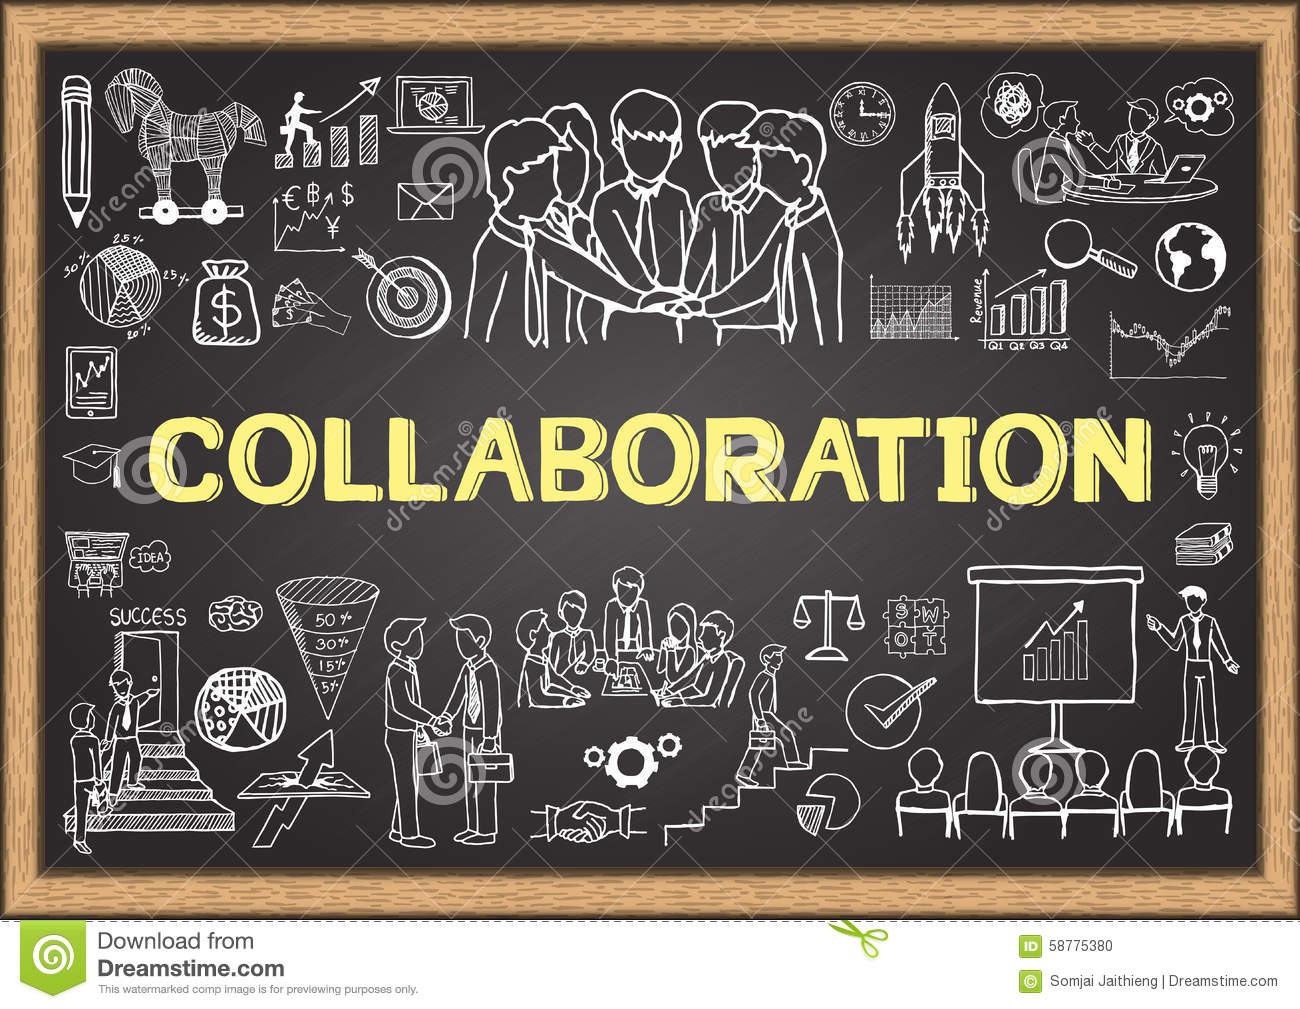 Business Doodles On Chalkboard With The Concept Of Collaboration Stock Vector  Image 58775380